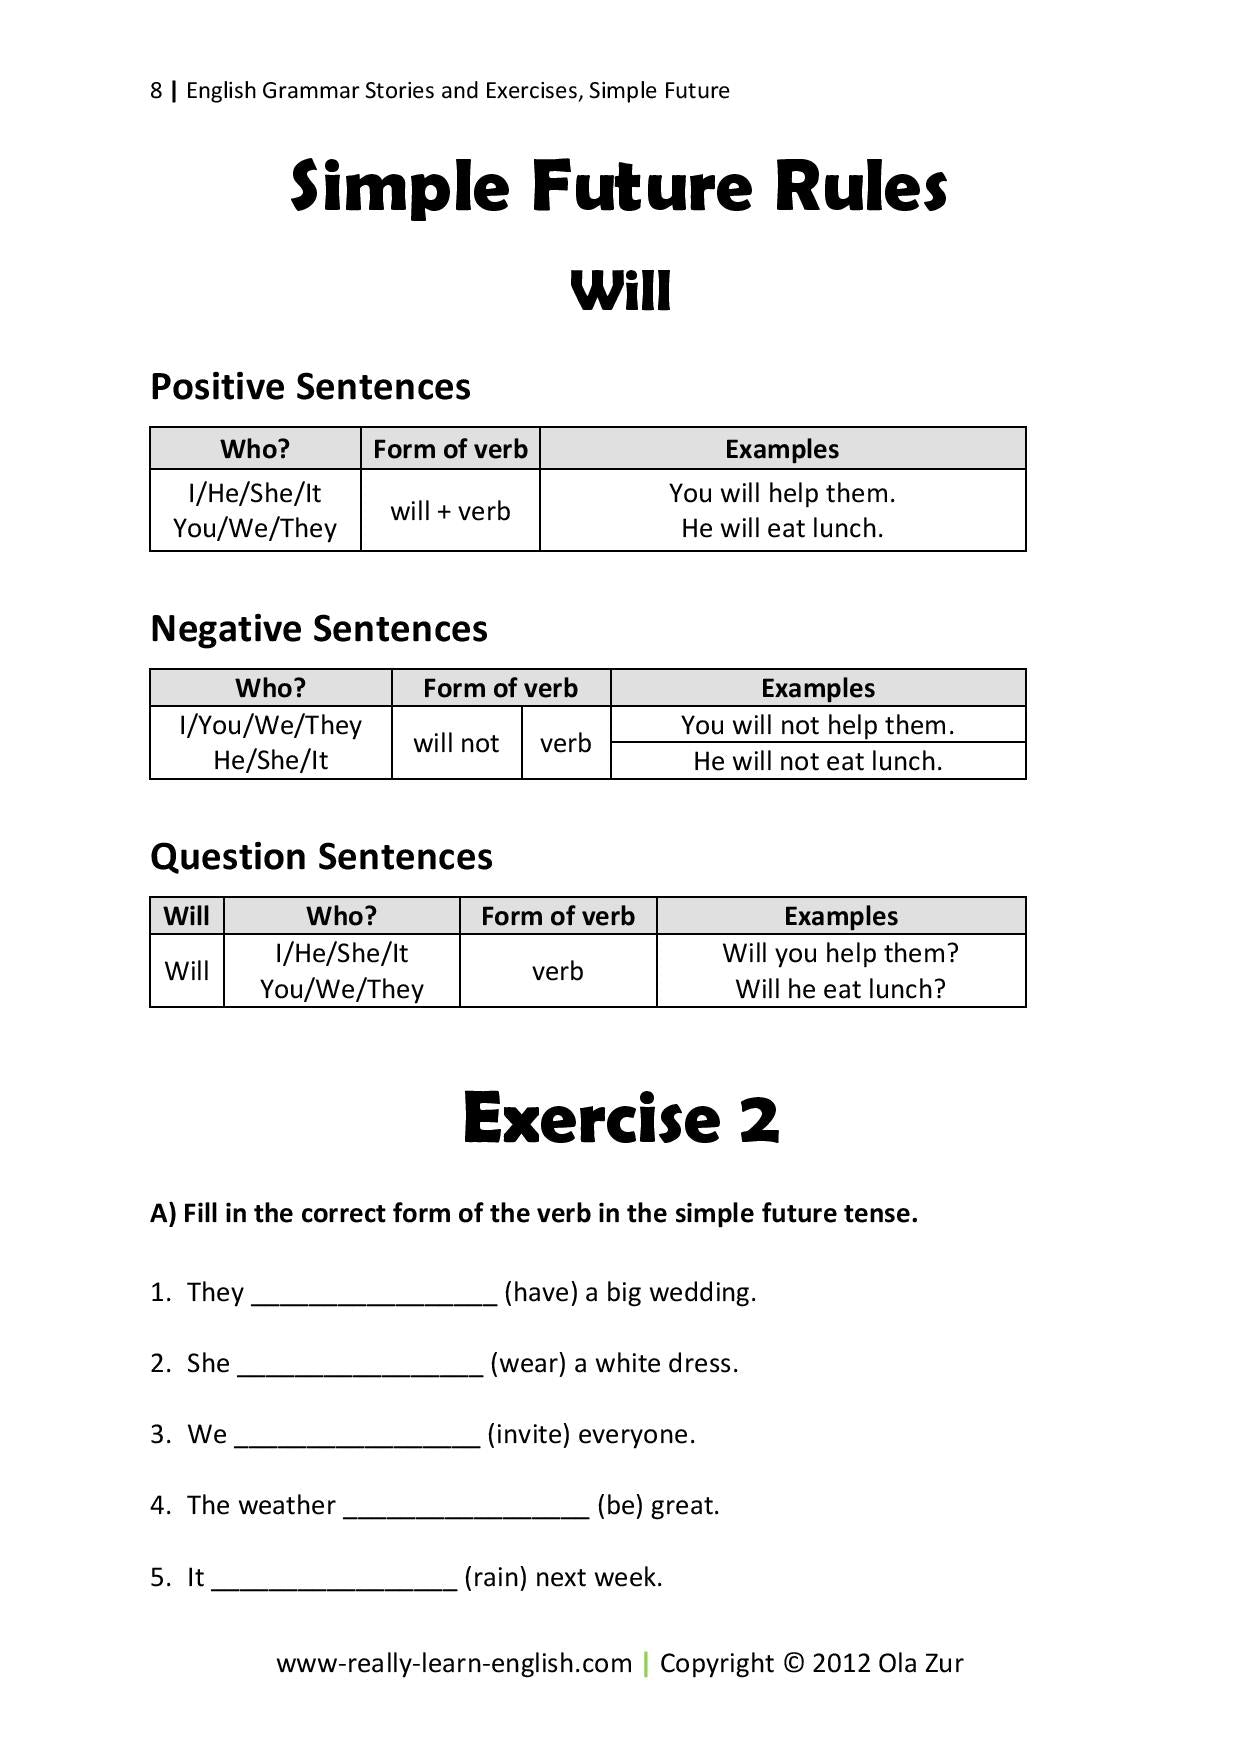 Write Verb in each Sentence in Future Tense Form Worksheet   Turtle likewise Simple Future Tense – definition  types  ex les and worksheets in addition Futur simple  Future tense in French  Worksheet 12 by jer   TpT moreover Simple Future Tense Exercises Worksheets Doc furthermore 39 FREE Future Continuous Worksheets furthermore Halloween Simple Future Tense Gap Fill Worksheet   Activity additionally Free Worksheets Liry   Download and Print Worksheets   Free on besides  furthermore Verbs Included Past Present Future Tense Worksheets Continuous Best moreover Verbs Tense Exercises Simple Future Worksheets Pdf also 224 FREE Future Simple Worksheets additionally Simple Future Tense  Exercise 5 Worksheet for 6th   8th Grade in addition Verbs And Verb Tense Free Language Stuff Simple Present Past Future likewise Simple Tense   Rules and Ex les   English TutorVista in addition  likewise Stories and Exercises to Practice the Simple Tenses – Really Learn. on worksheet on simple future tense